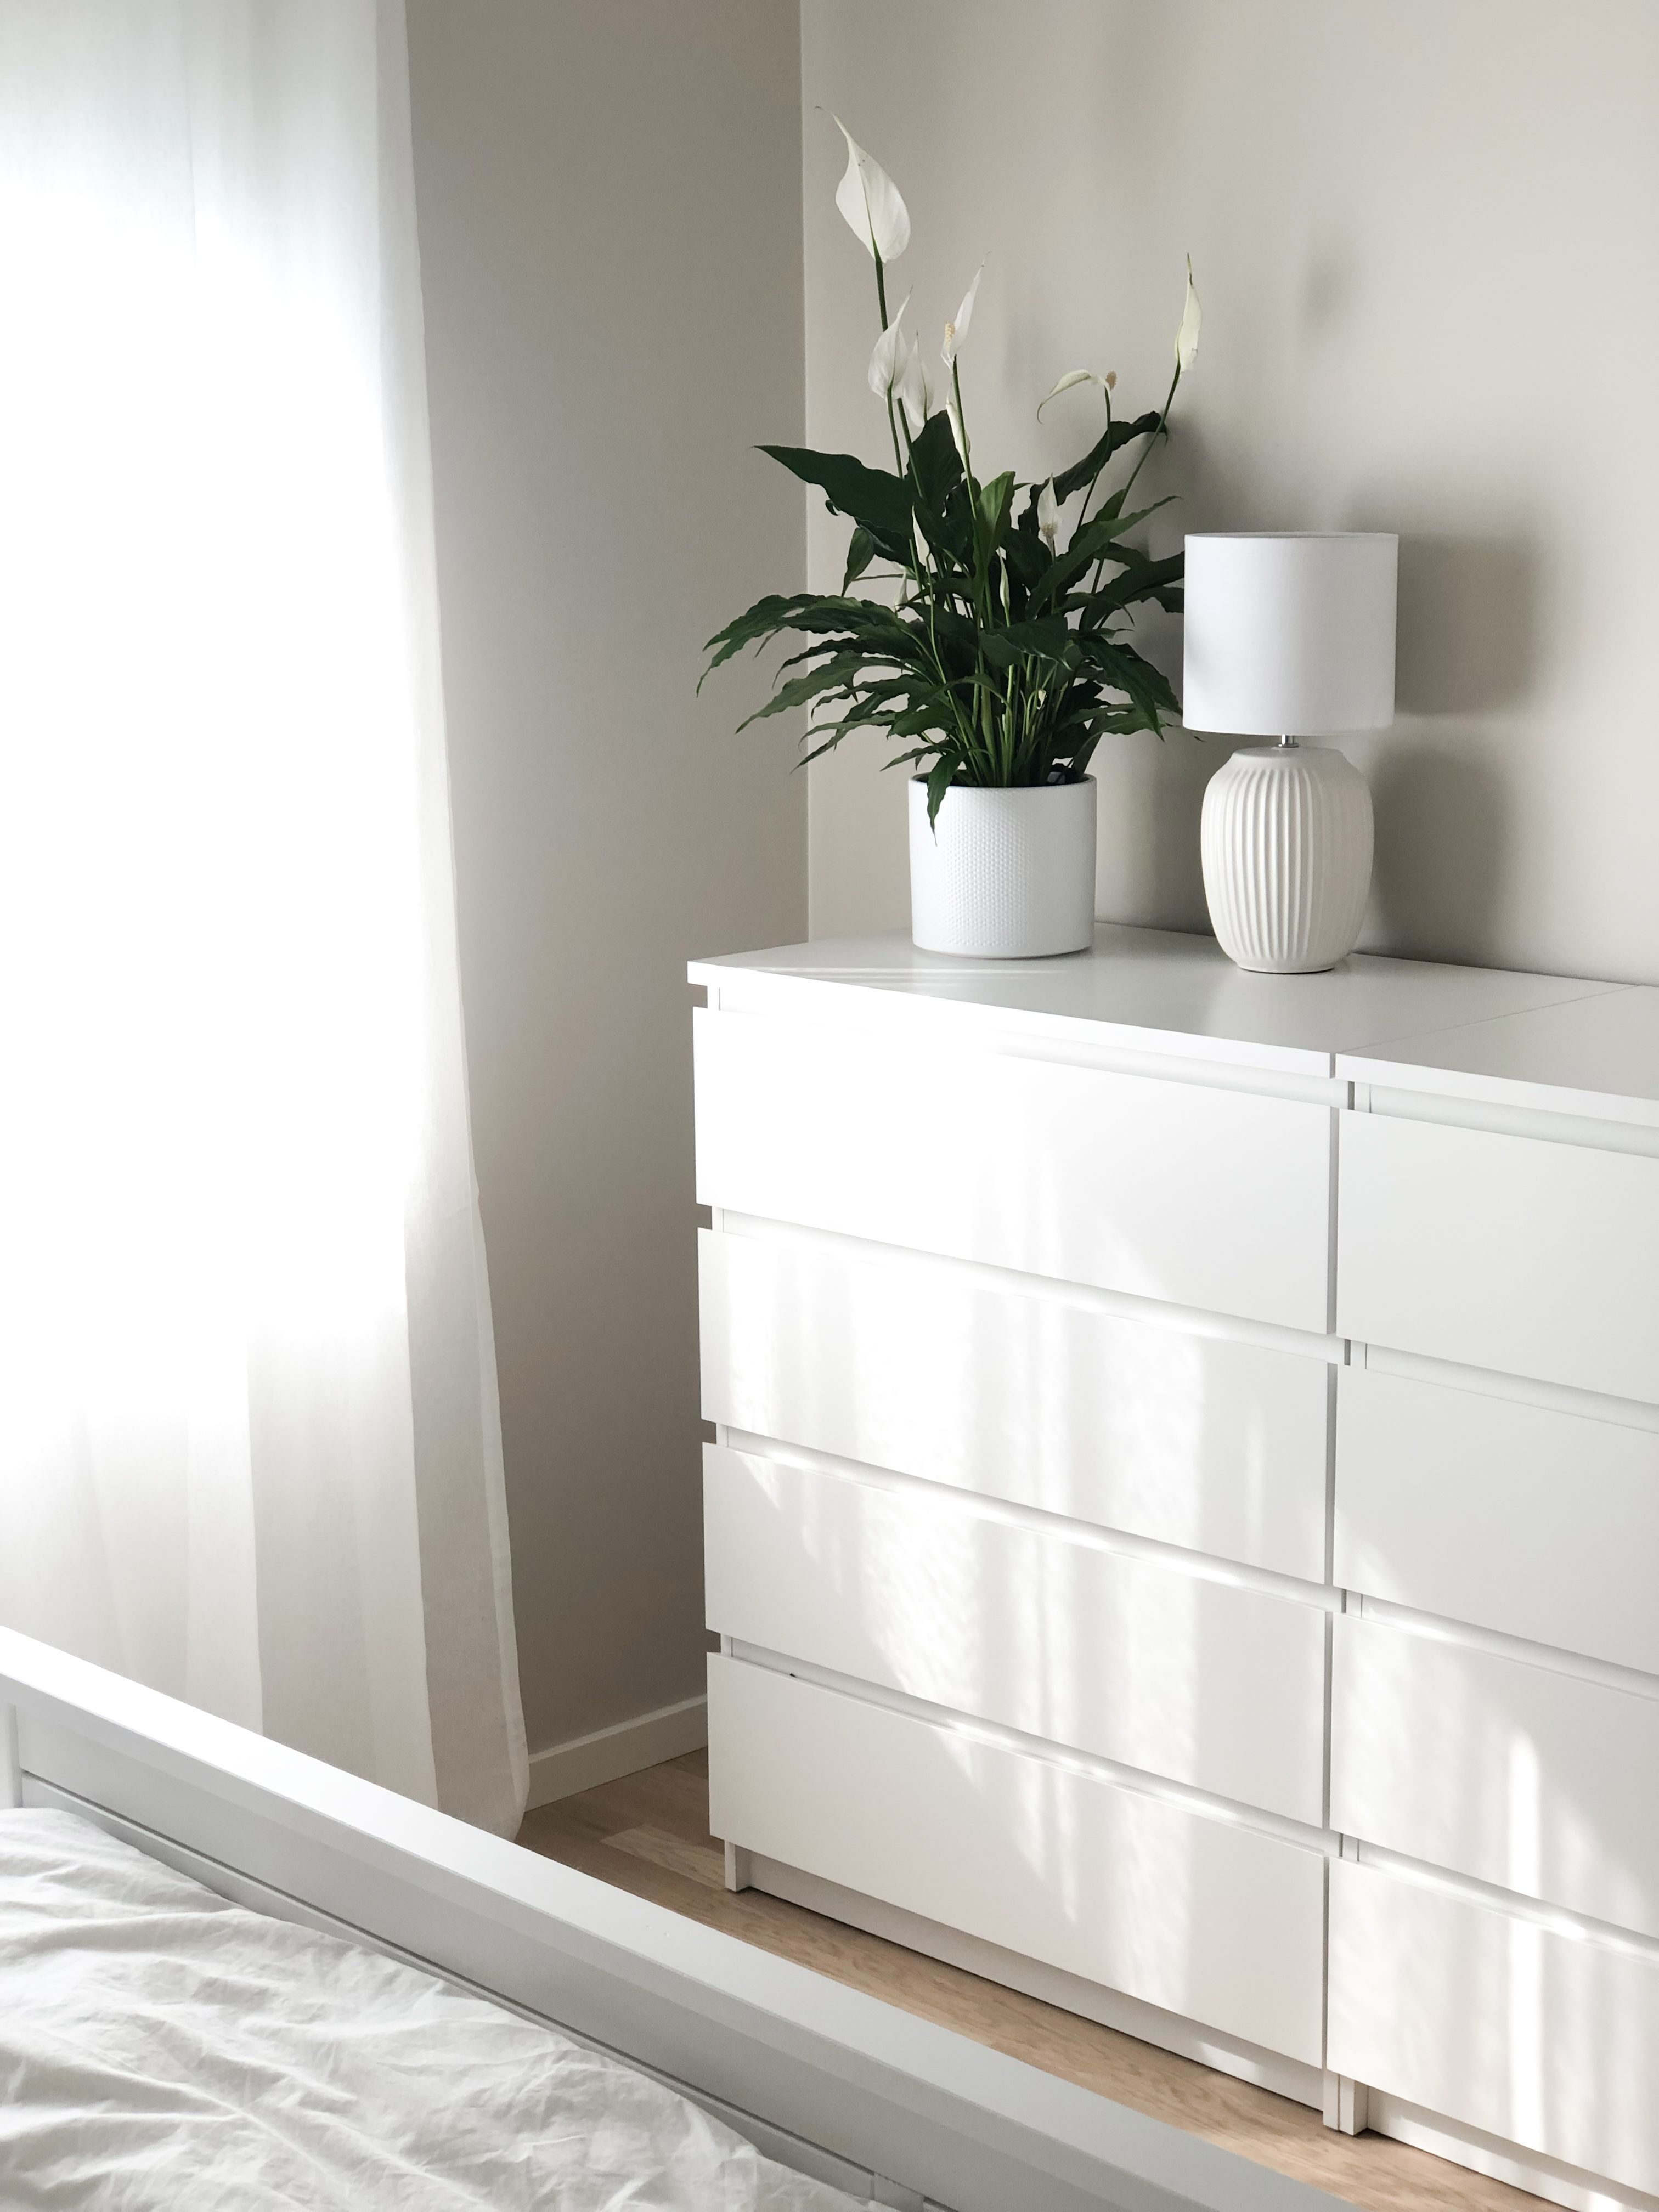 Ikea Malm Styling By Housewithrose In